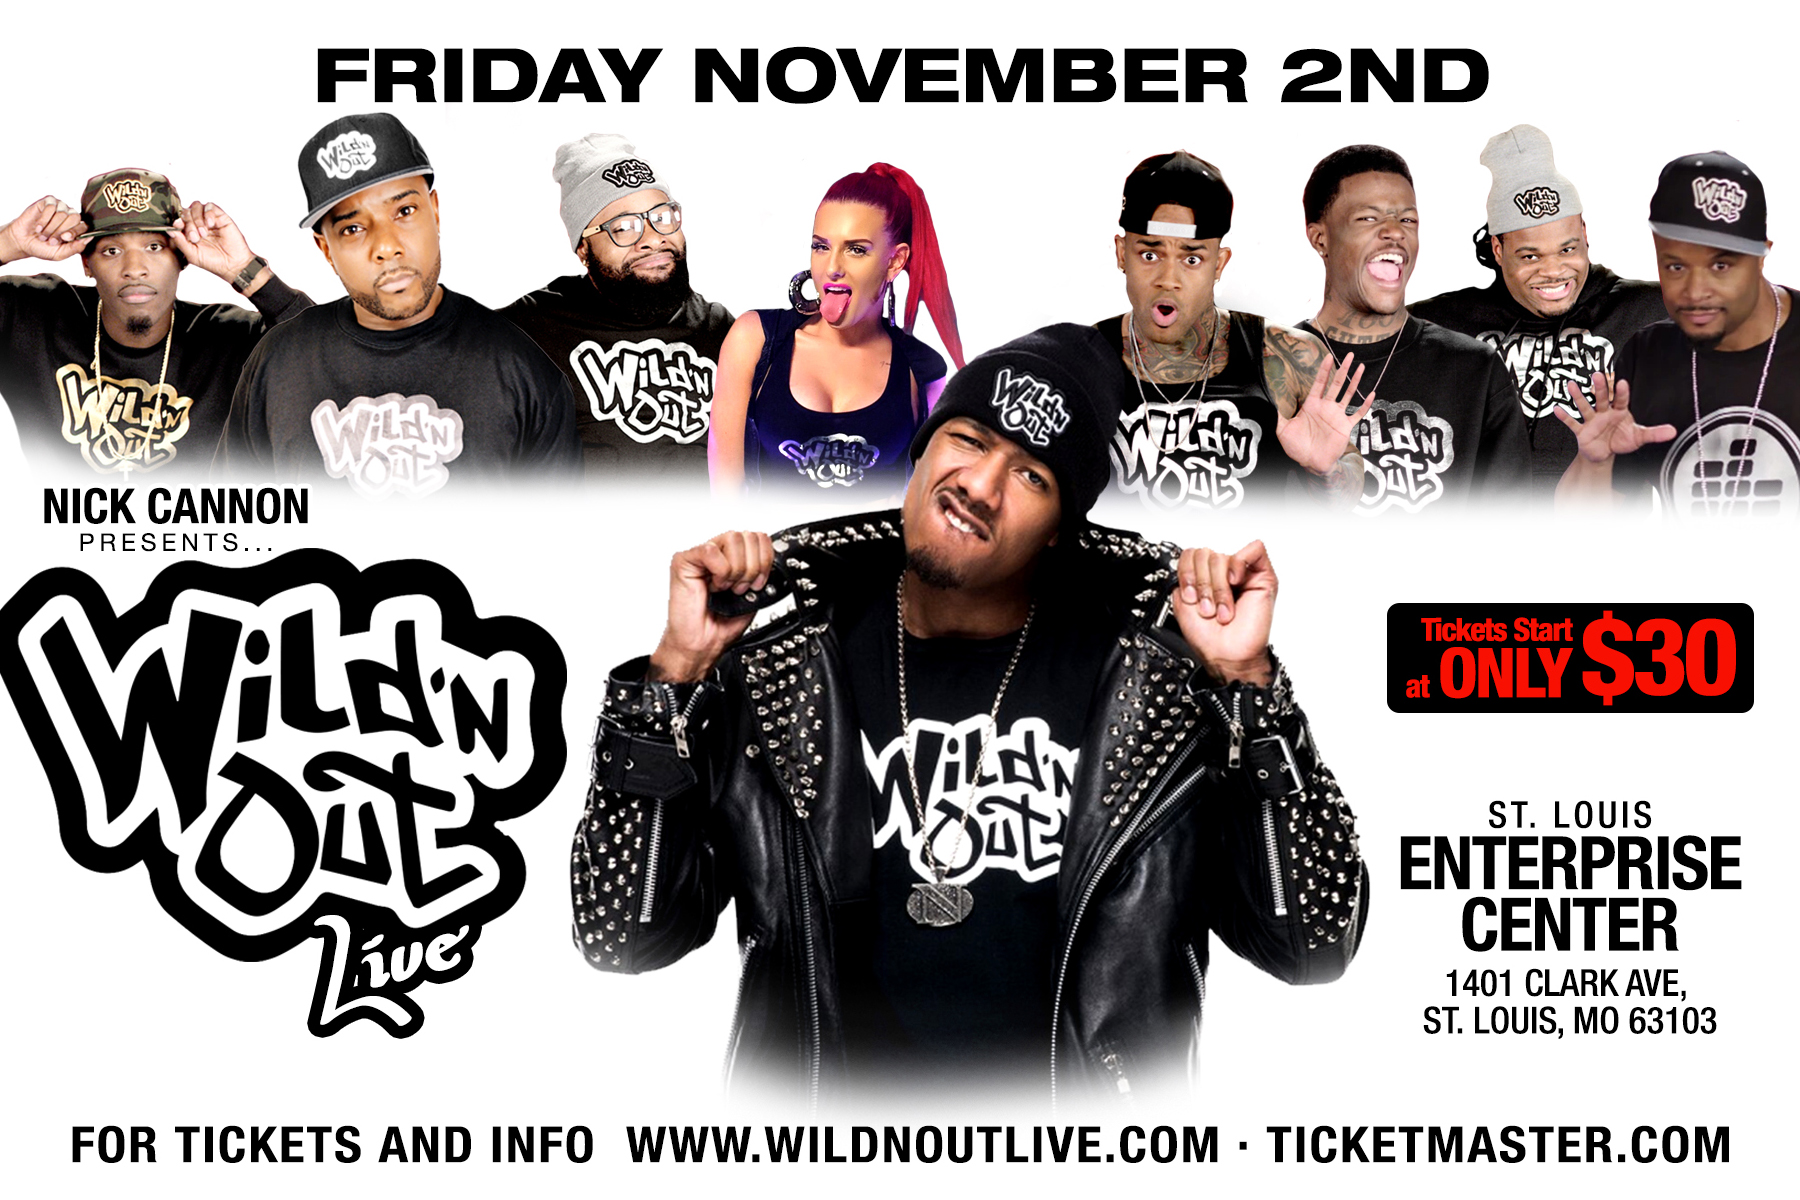 Wild N Out in St. Louis